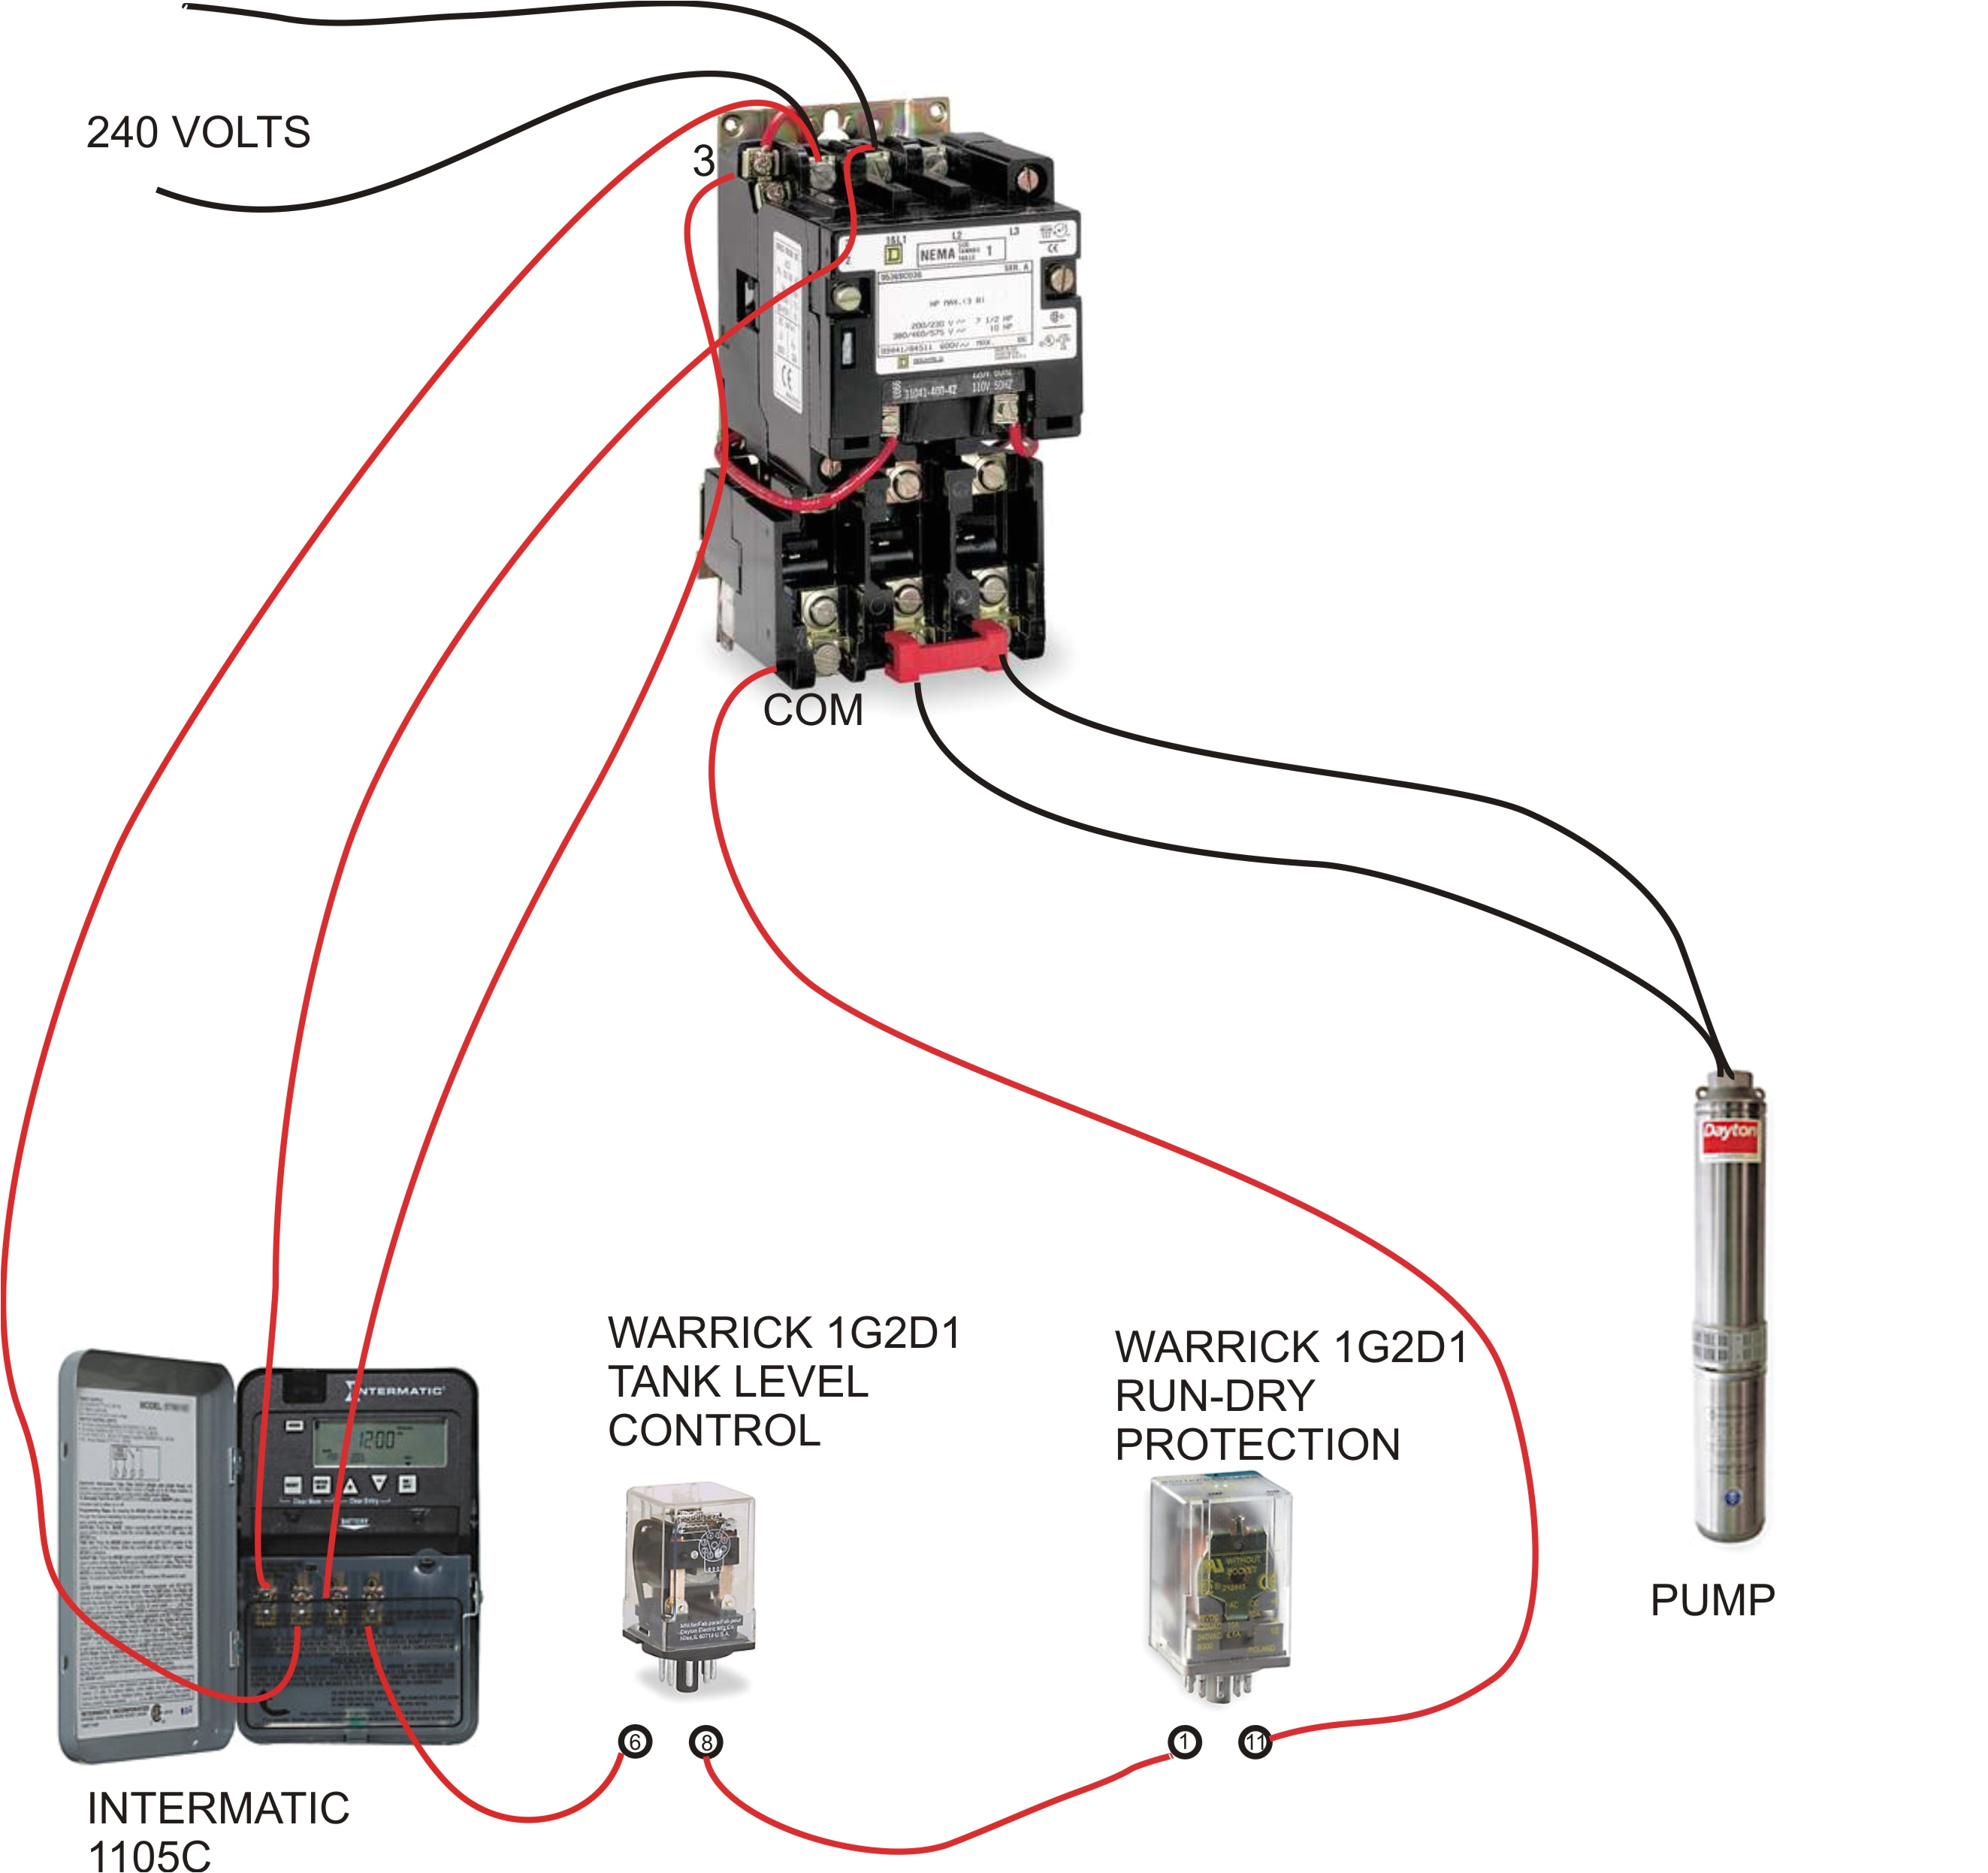 Square D 8536 Wiring Diagram Pressure Switch Wiring Diagram Square D Wiring Diagram